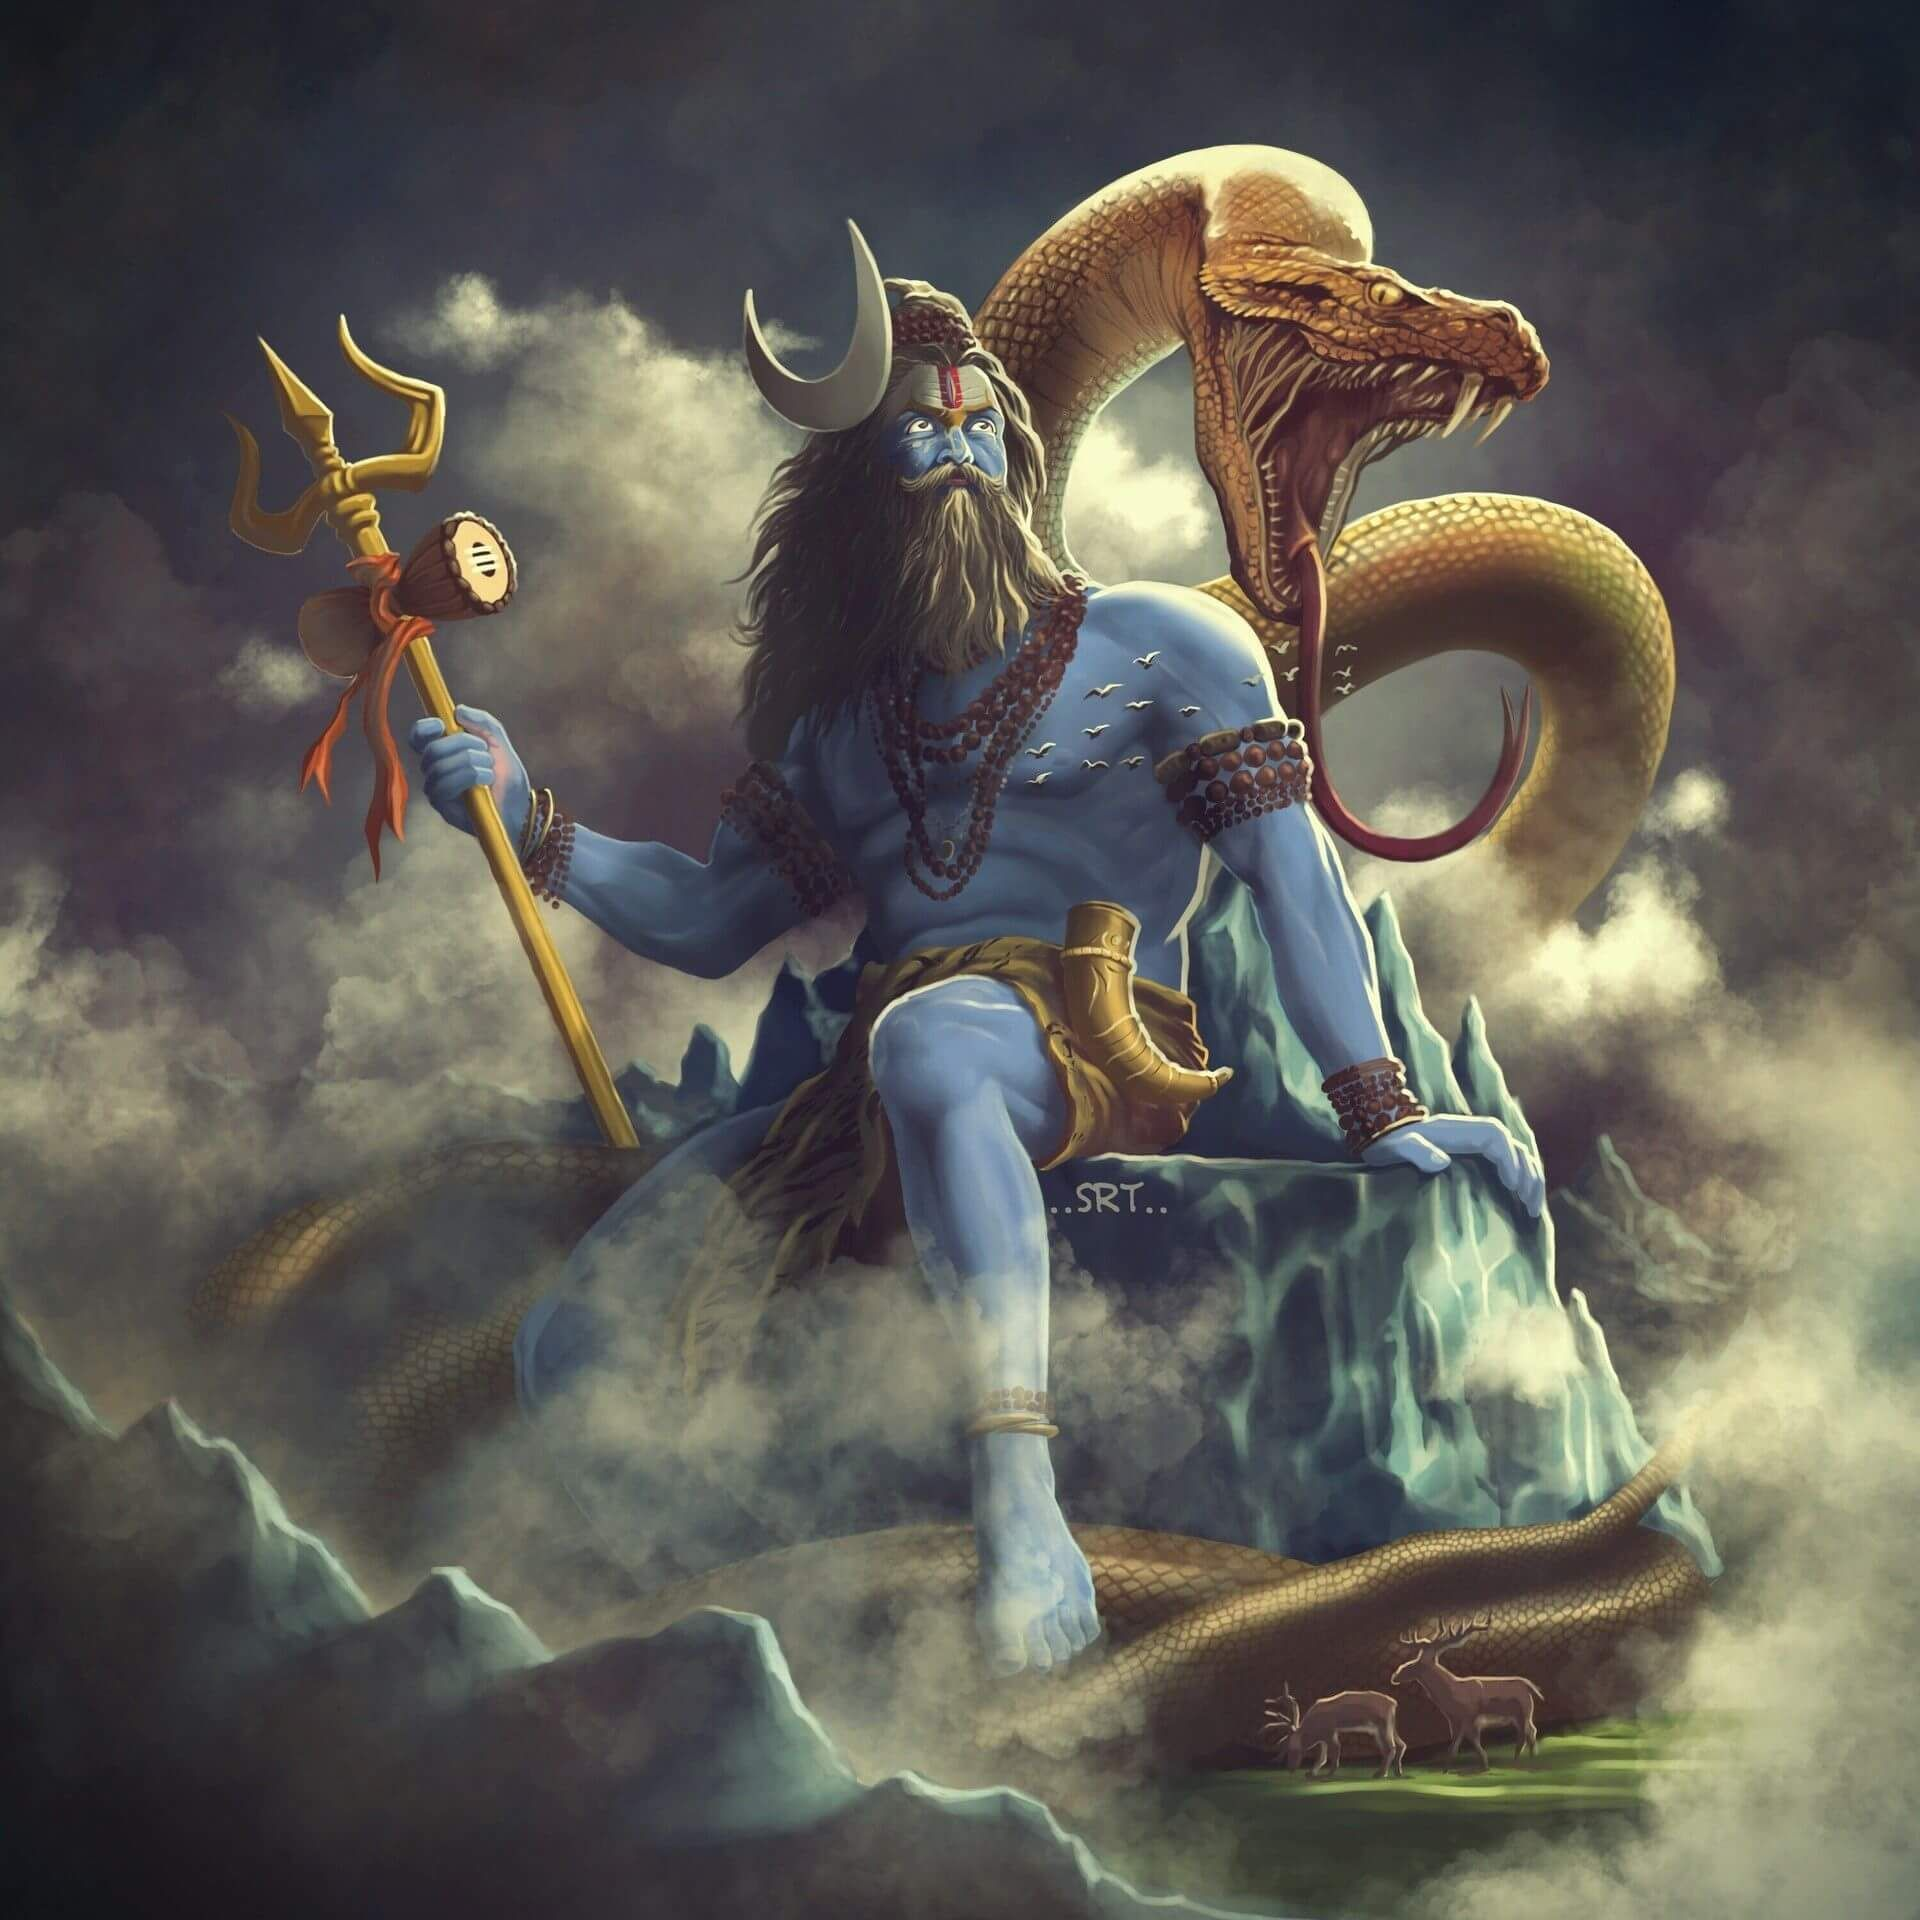 Lord Shiva Shiva Angry Lord Shiva Lord Shiva Hd Images 3d animation ultra hd 1080p shiva hd